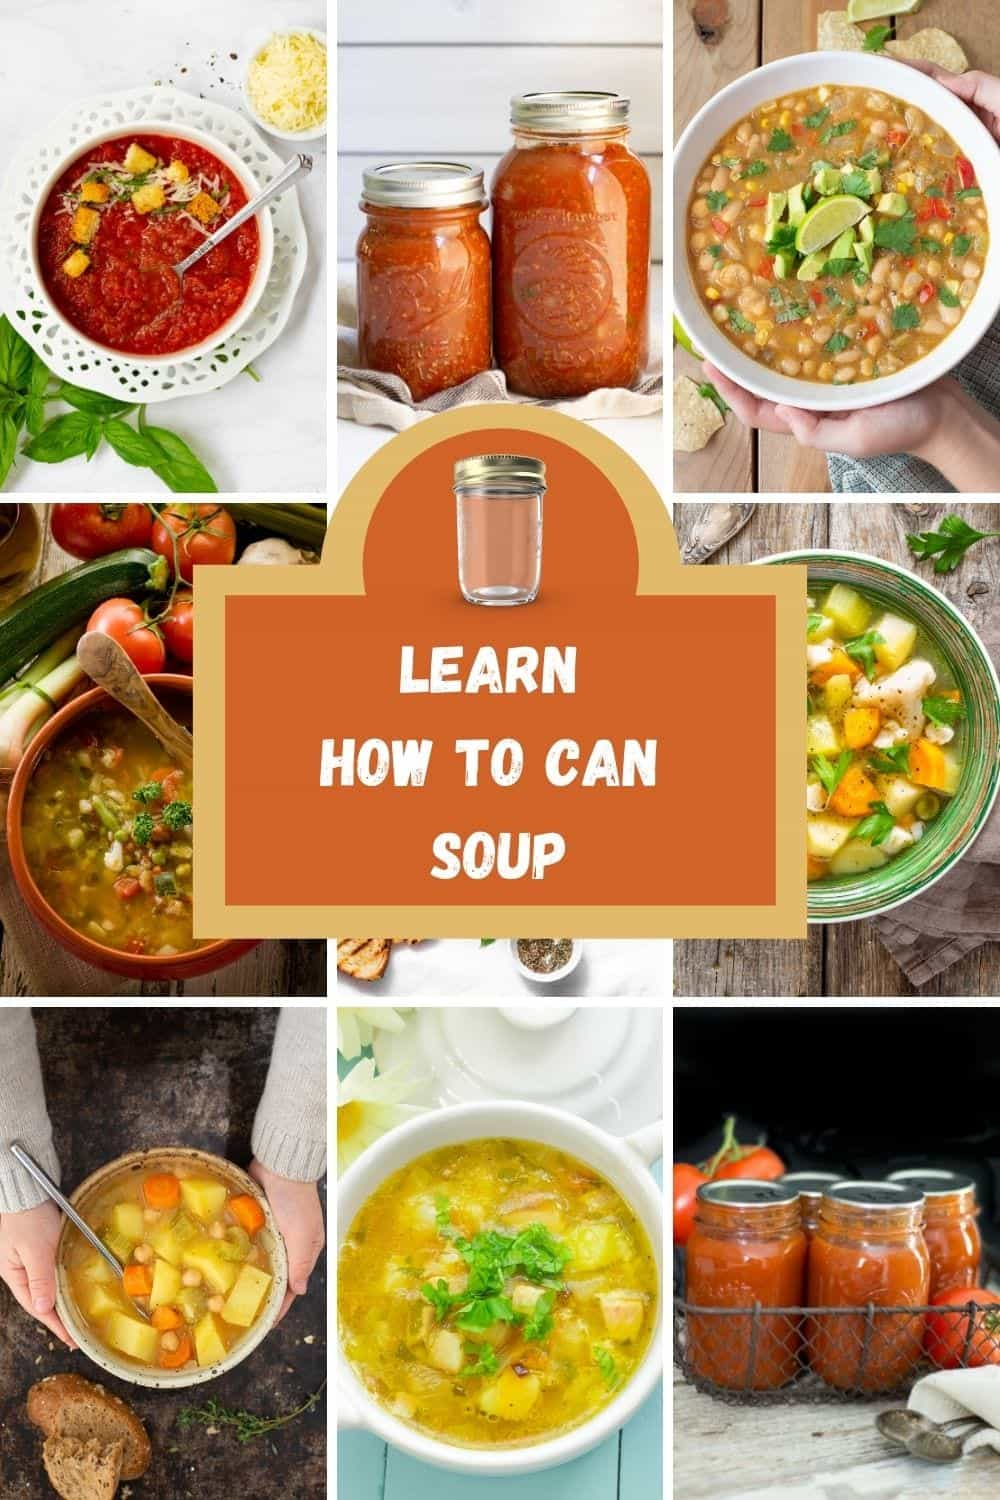 learn how to can soup pictures of types of soup